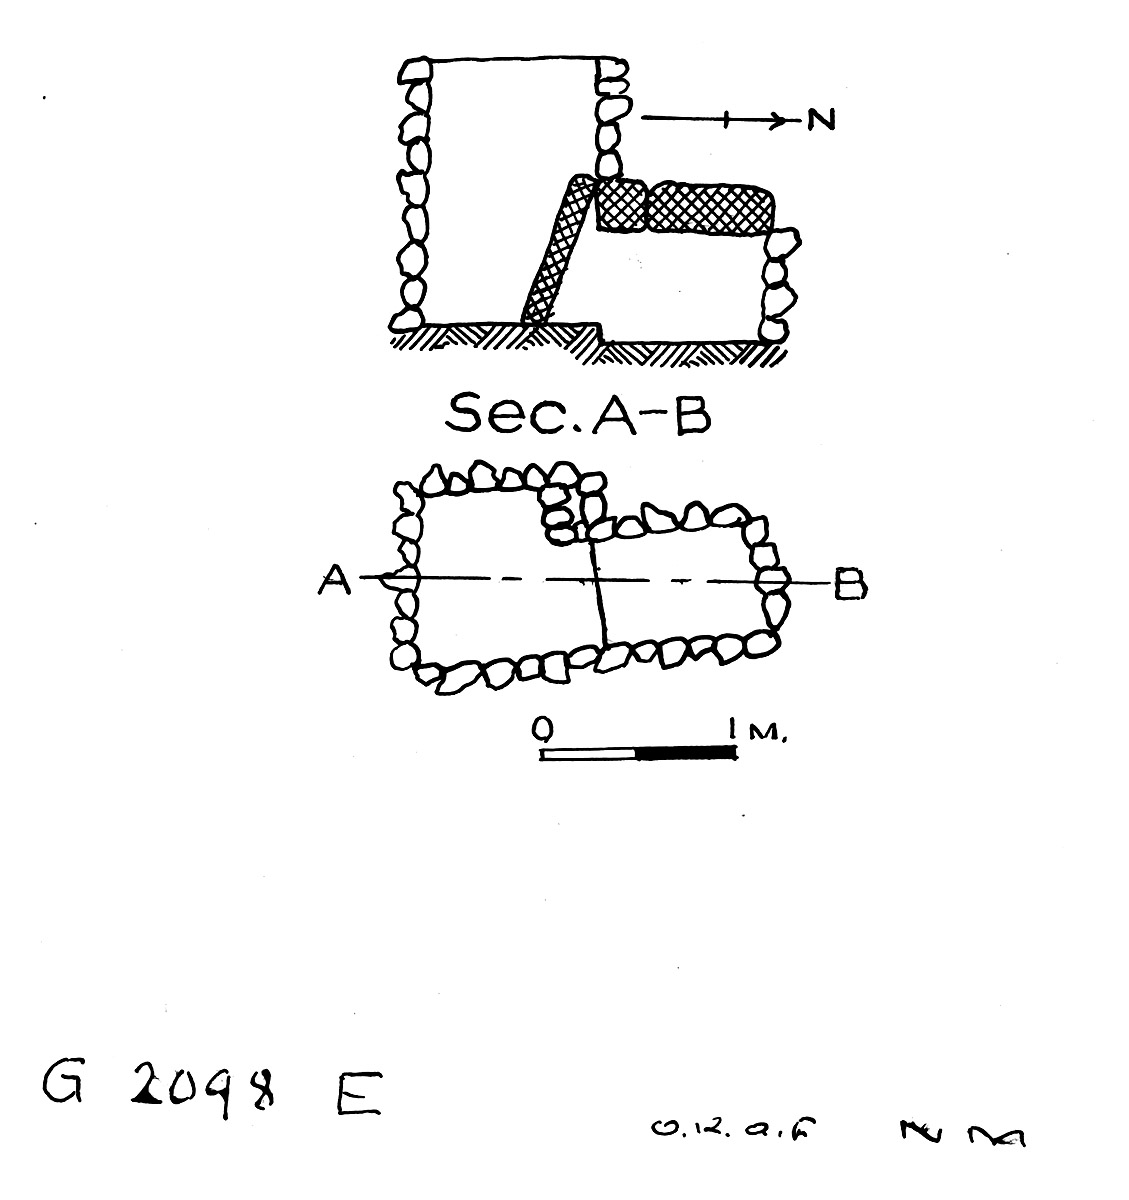 Maps and plans: G 2098, Shaft E